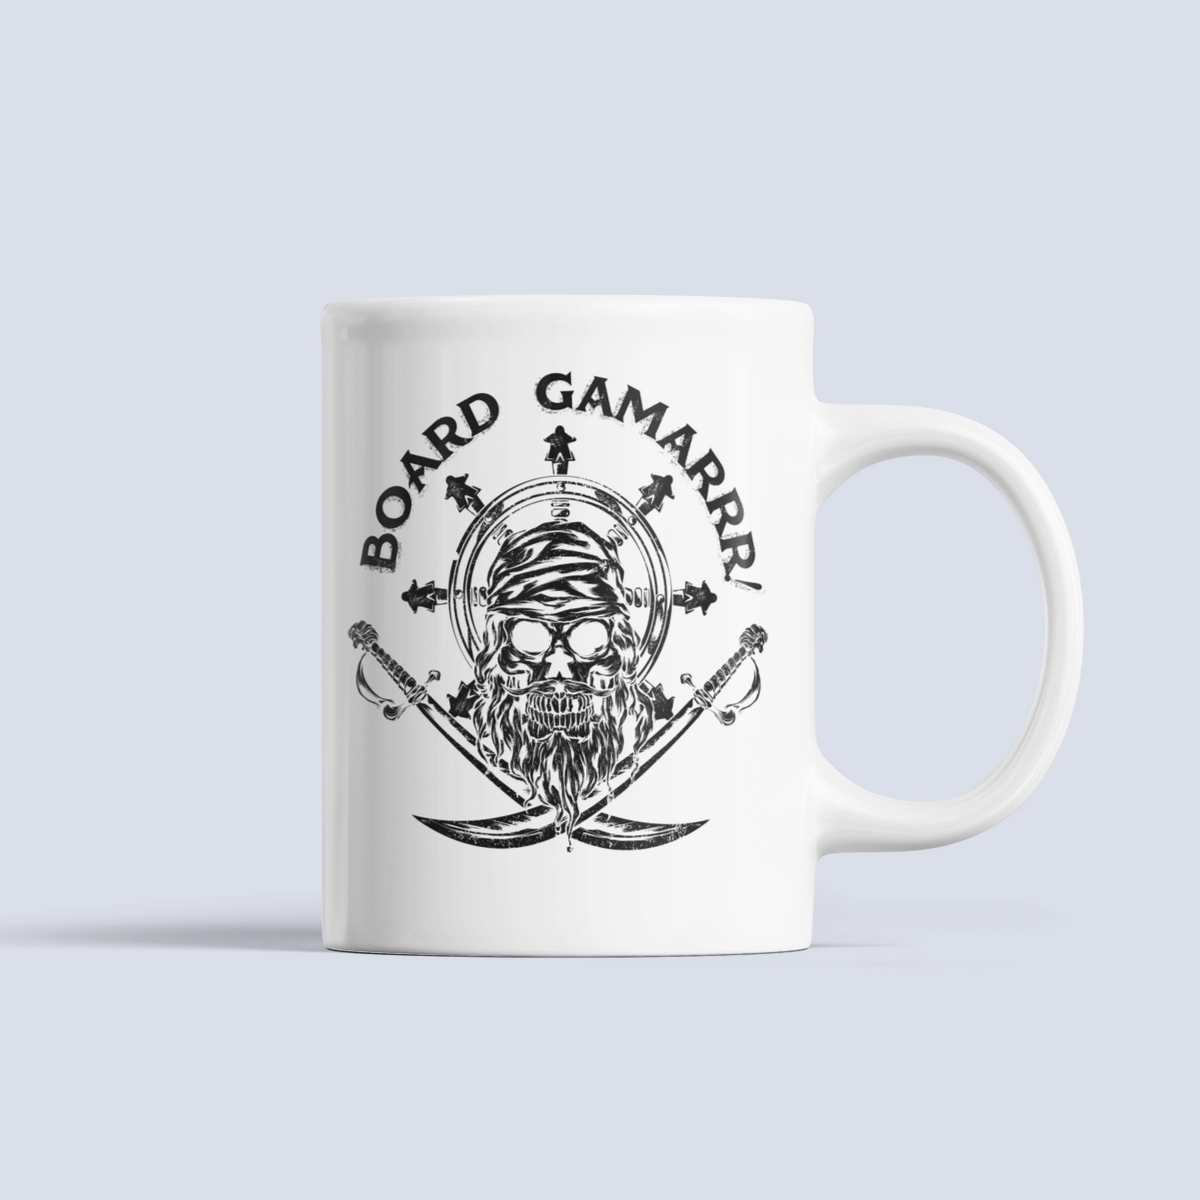 Captain Meeple Board Gamarrr Ceramic Mug